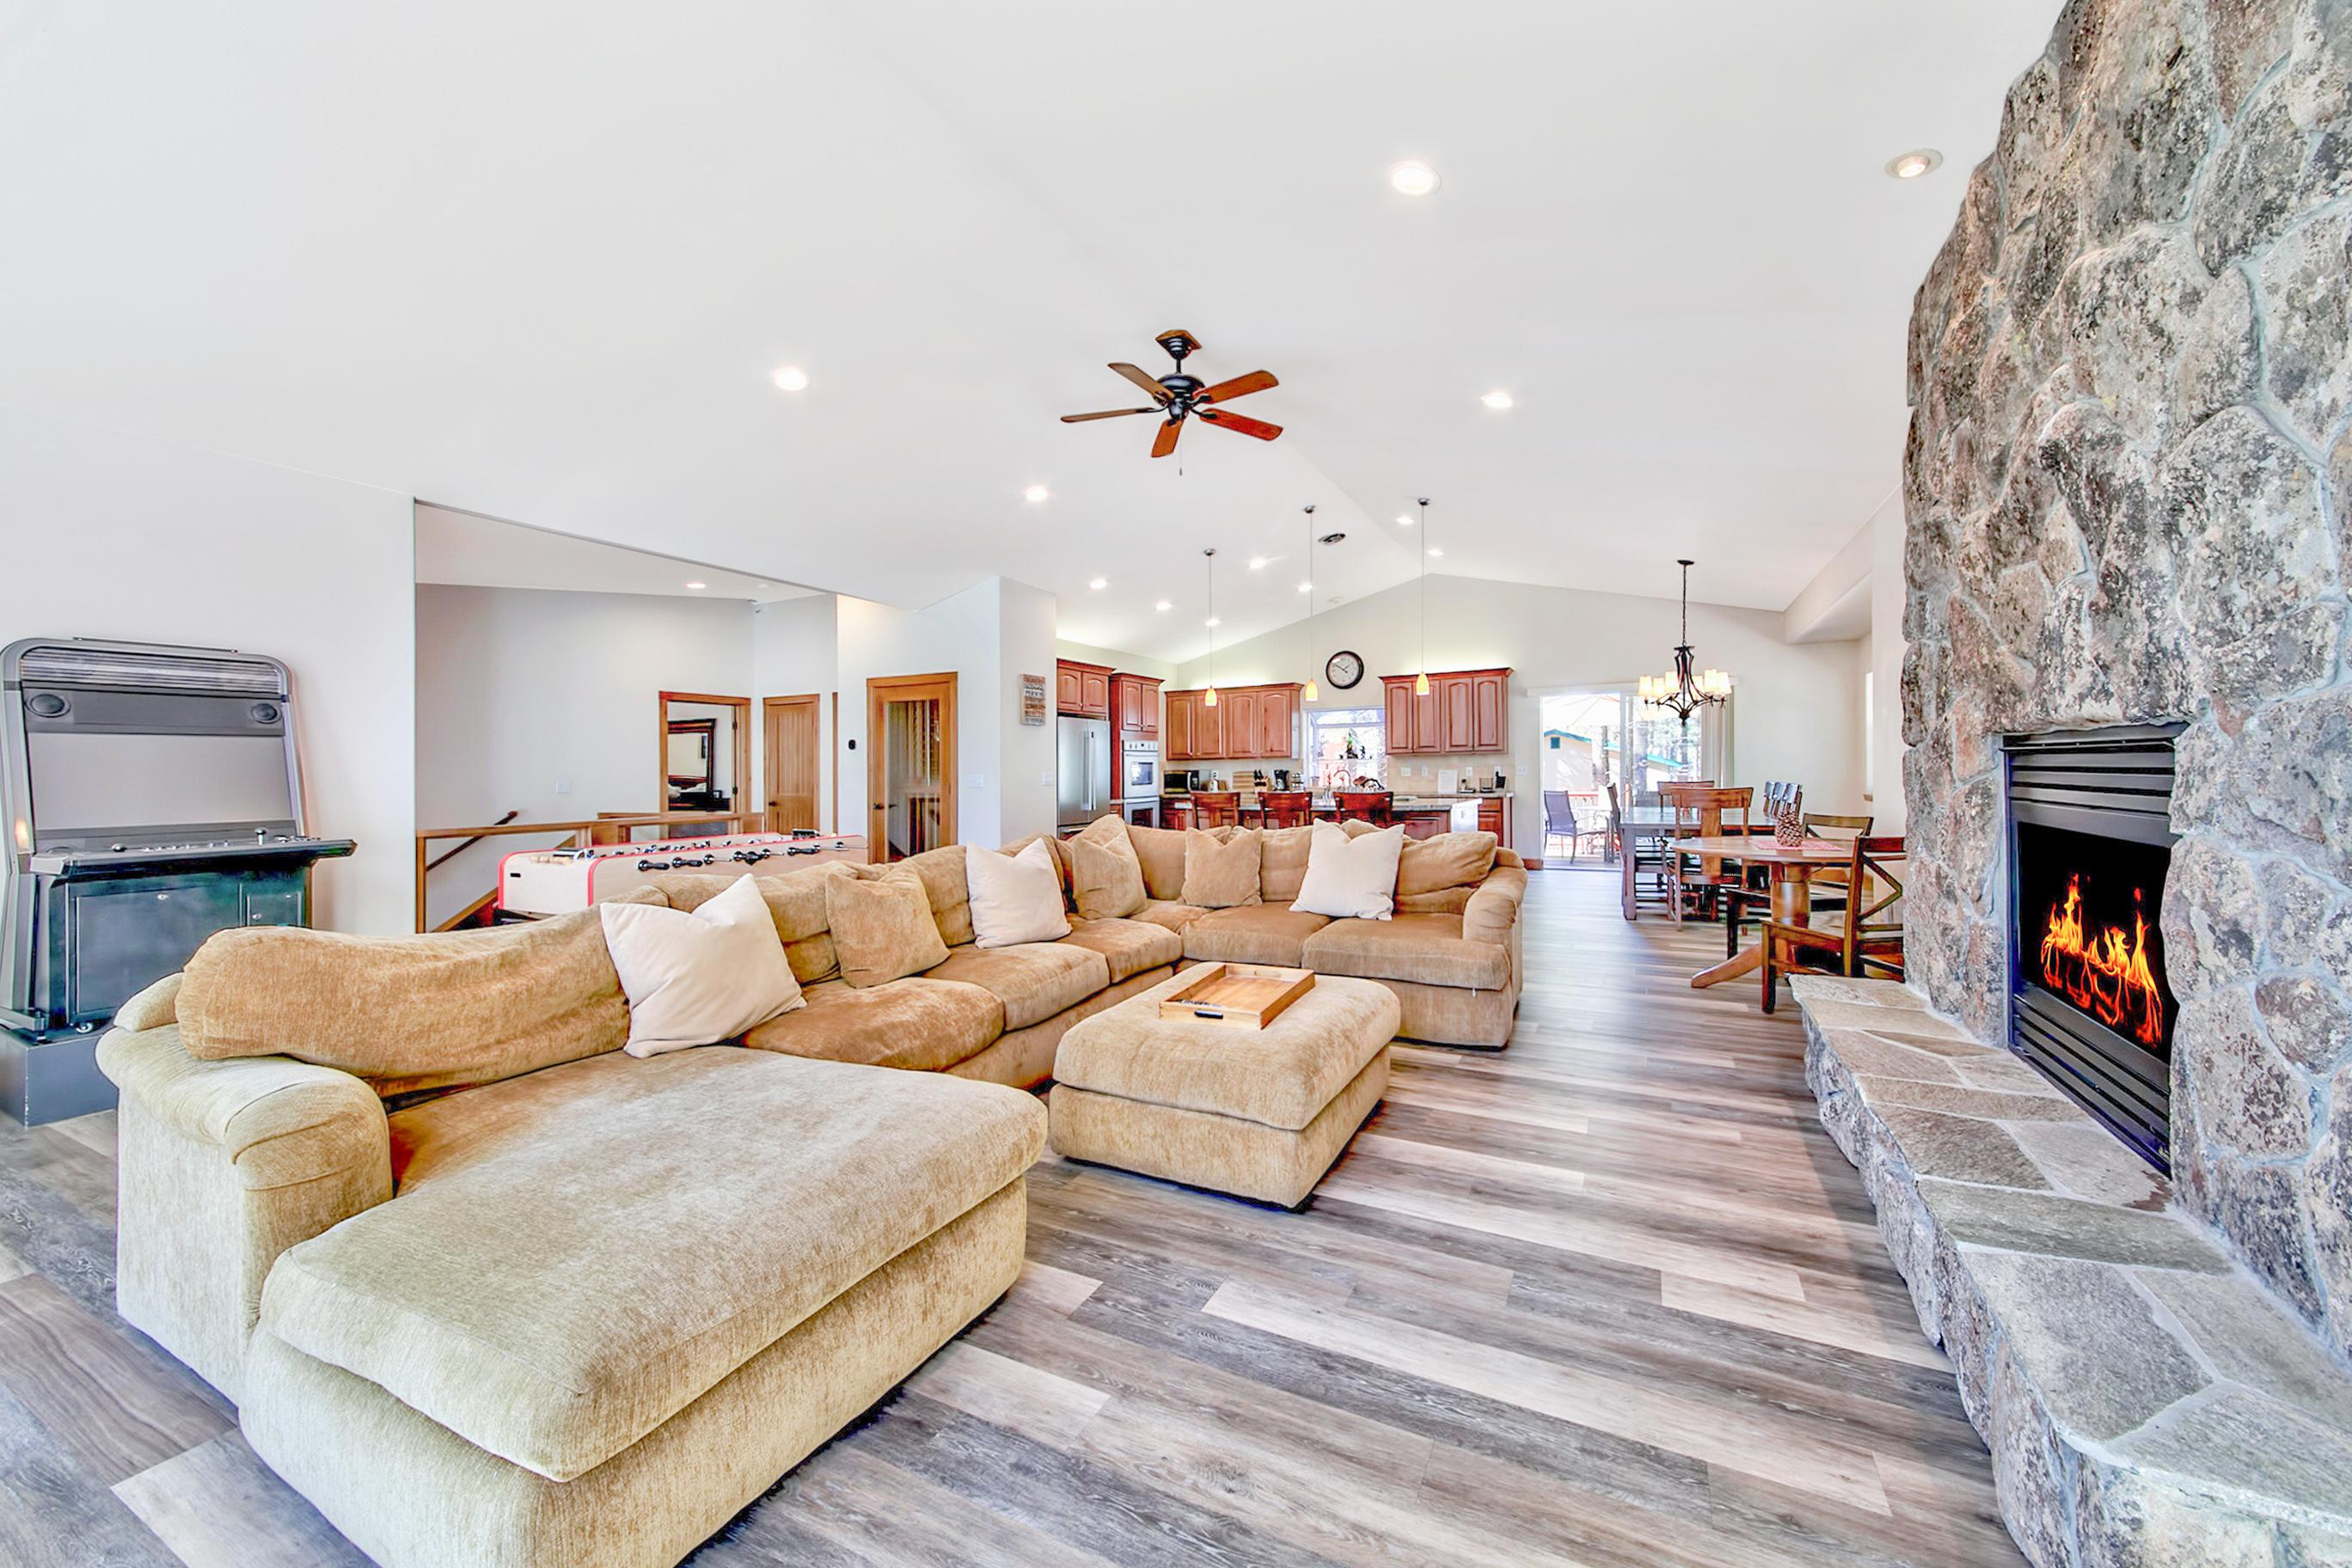 Welcome to South Lake Tahoe! The spacious living room features vaulted ceilings and a stone fireplace.